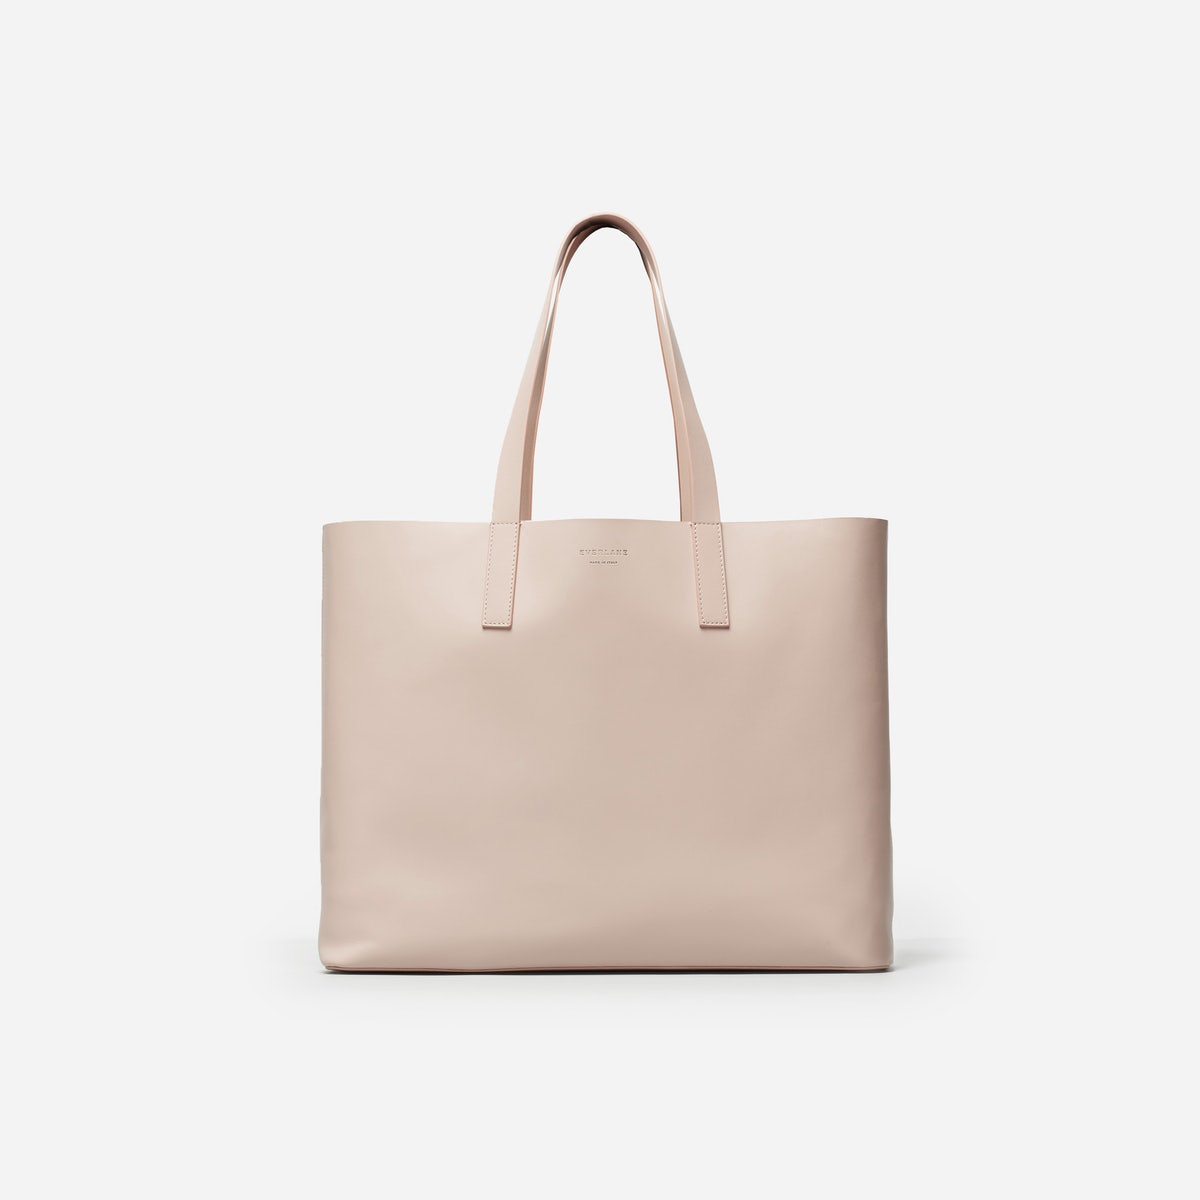 Everlane Leather Market Tote